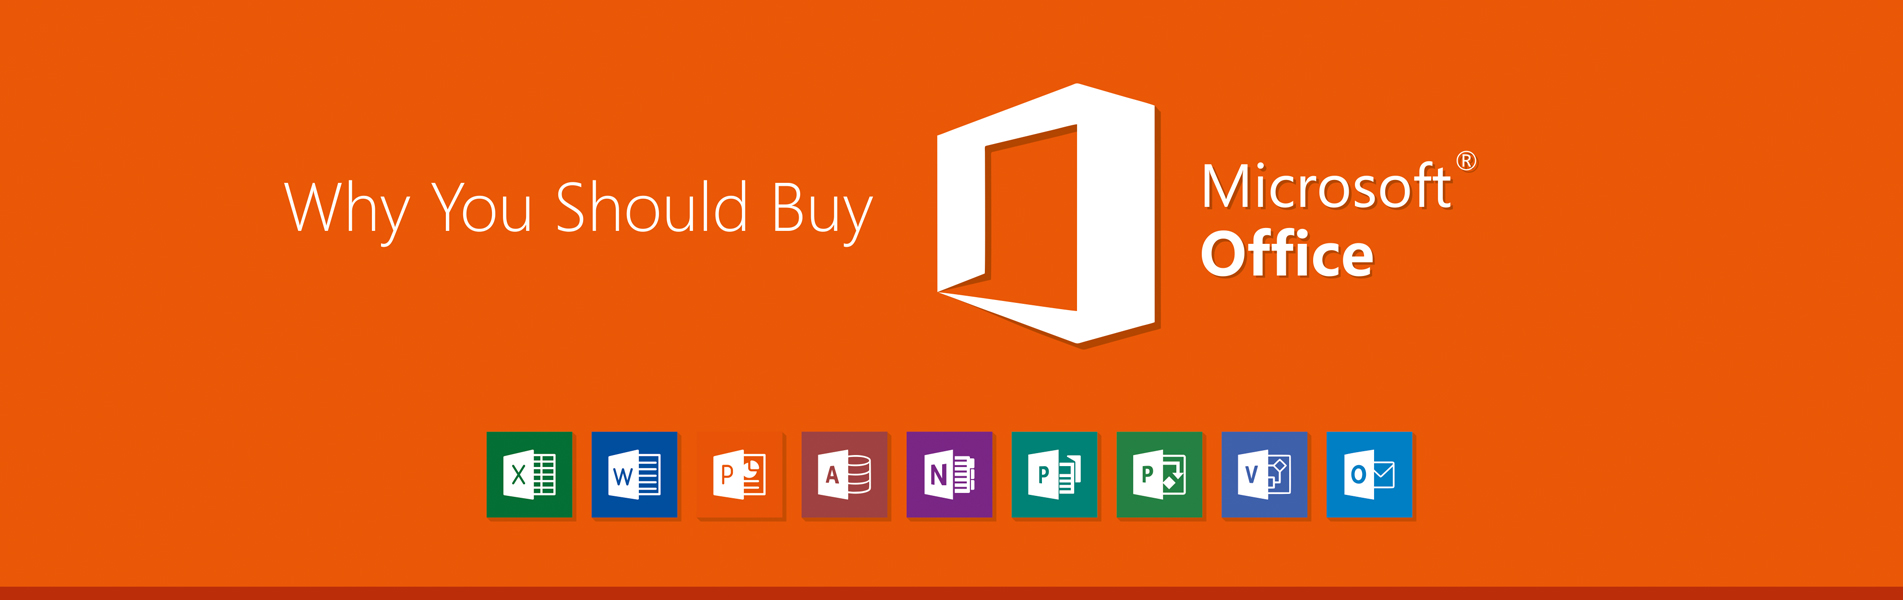 Why You Should Buy Microsoft Office